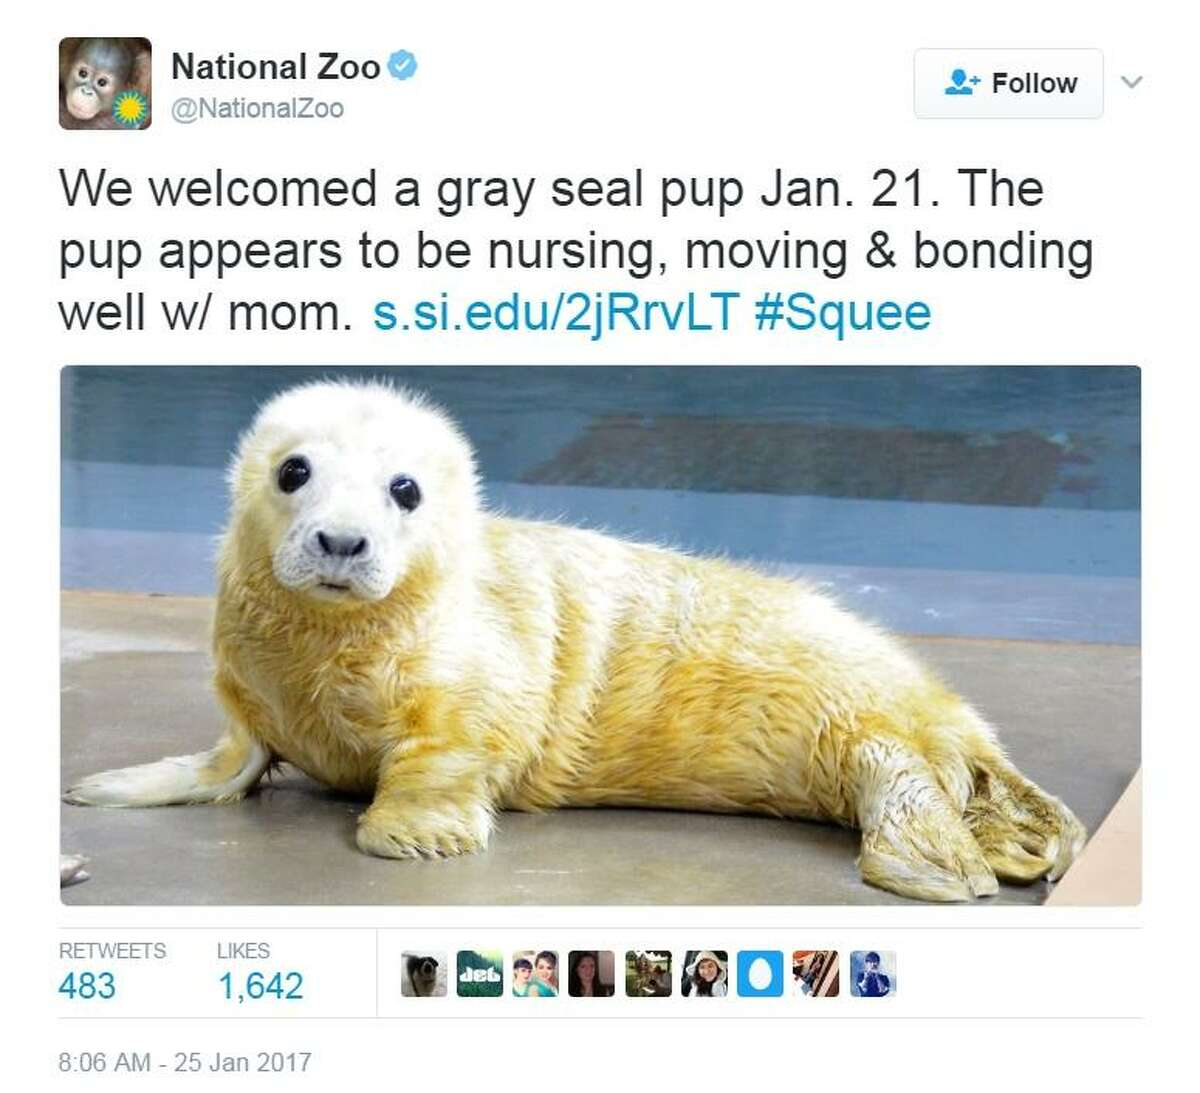 The animal tweet that launched more than 1,000 likes - the National Zoo tweet of its gray seal pup for #CuteAnimalTweetOff.